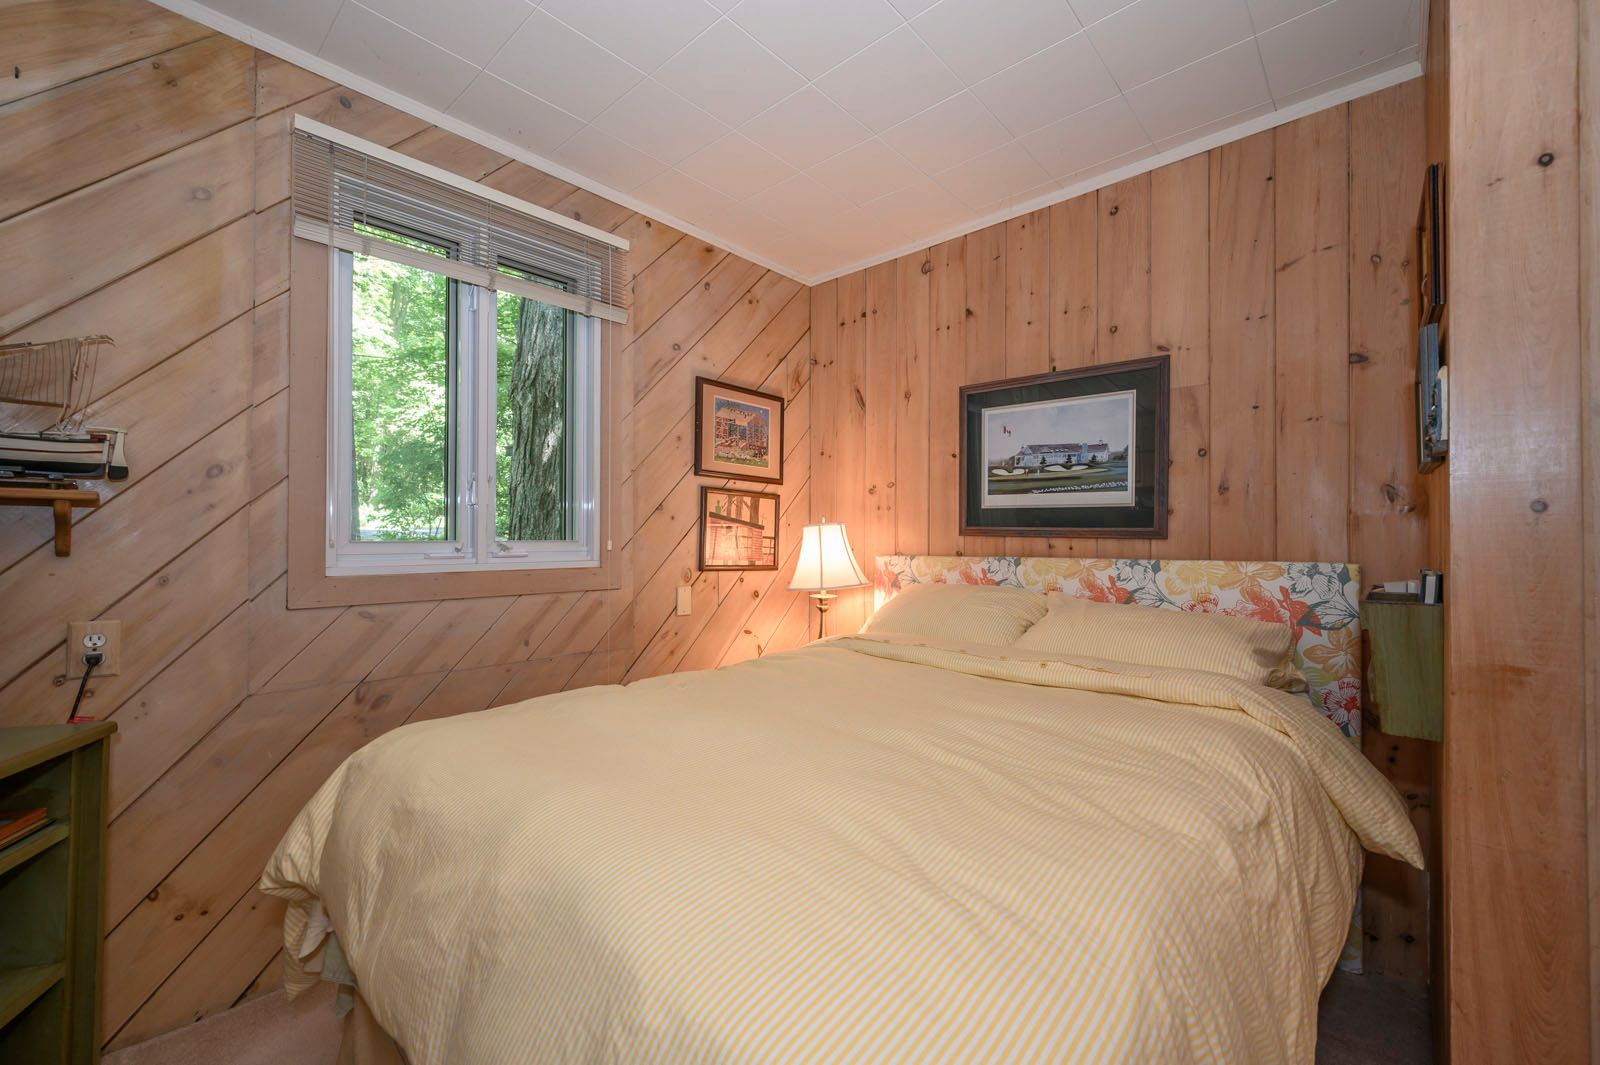 Photo 16: Photos: 54 Hamilton Island Road in Summerstown: Summerstown, ON Recreational for sale (St.Lawrence River)